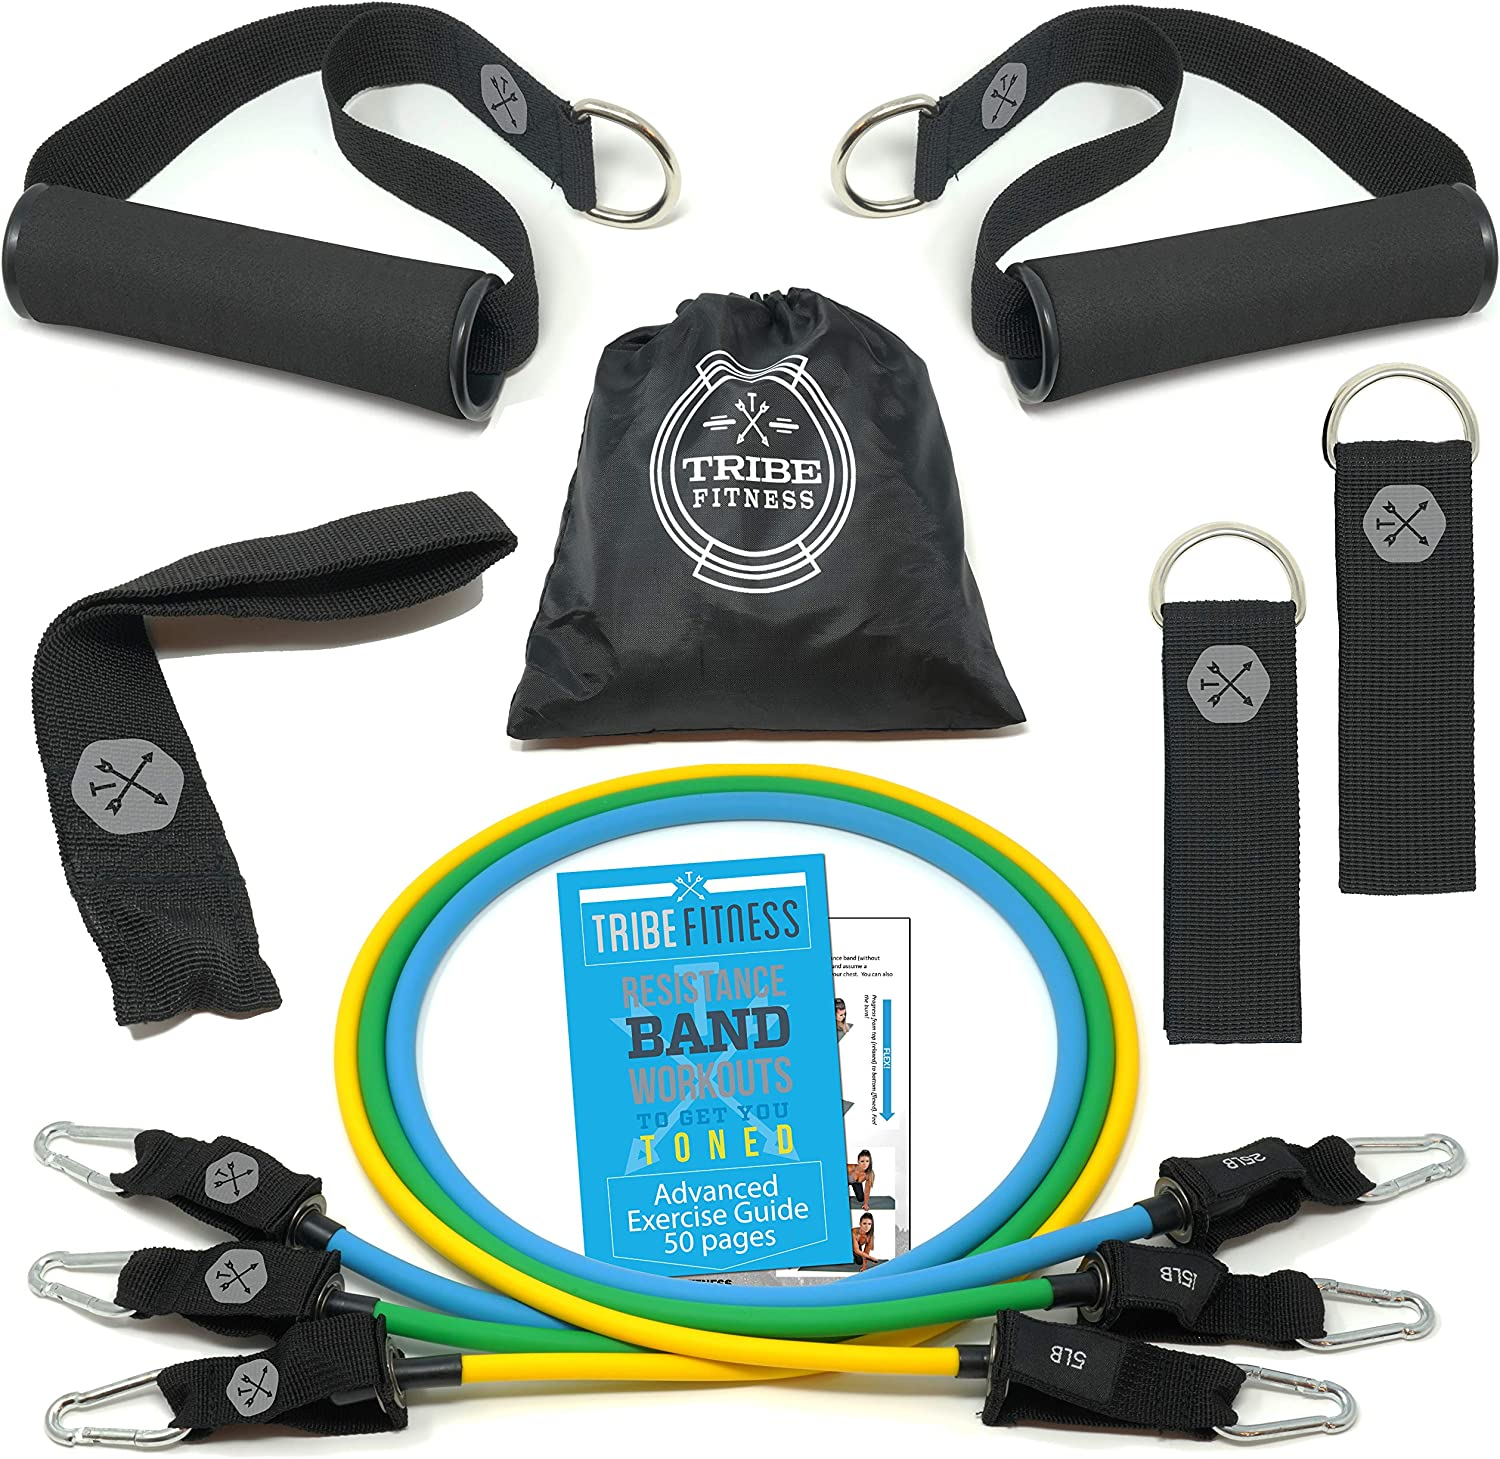 TRIBE PREMIUM Resistance Bands Set for Exercise, Workout Bands for Men with Fitness Tension Bands, Handles, Door Anchor, Ankle Straps, Carry Bag & Advanced eBook - Strength Training, Home Gym & More!!